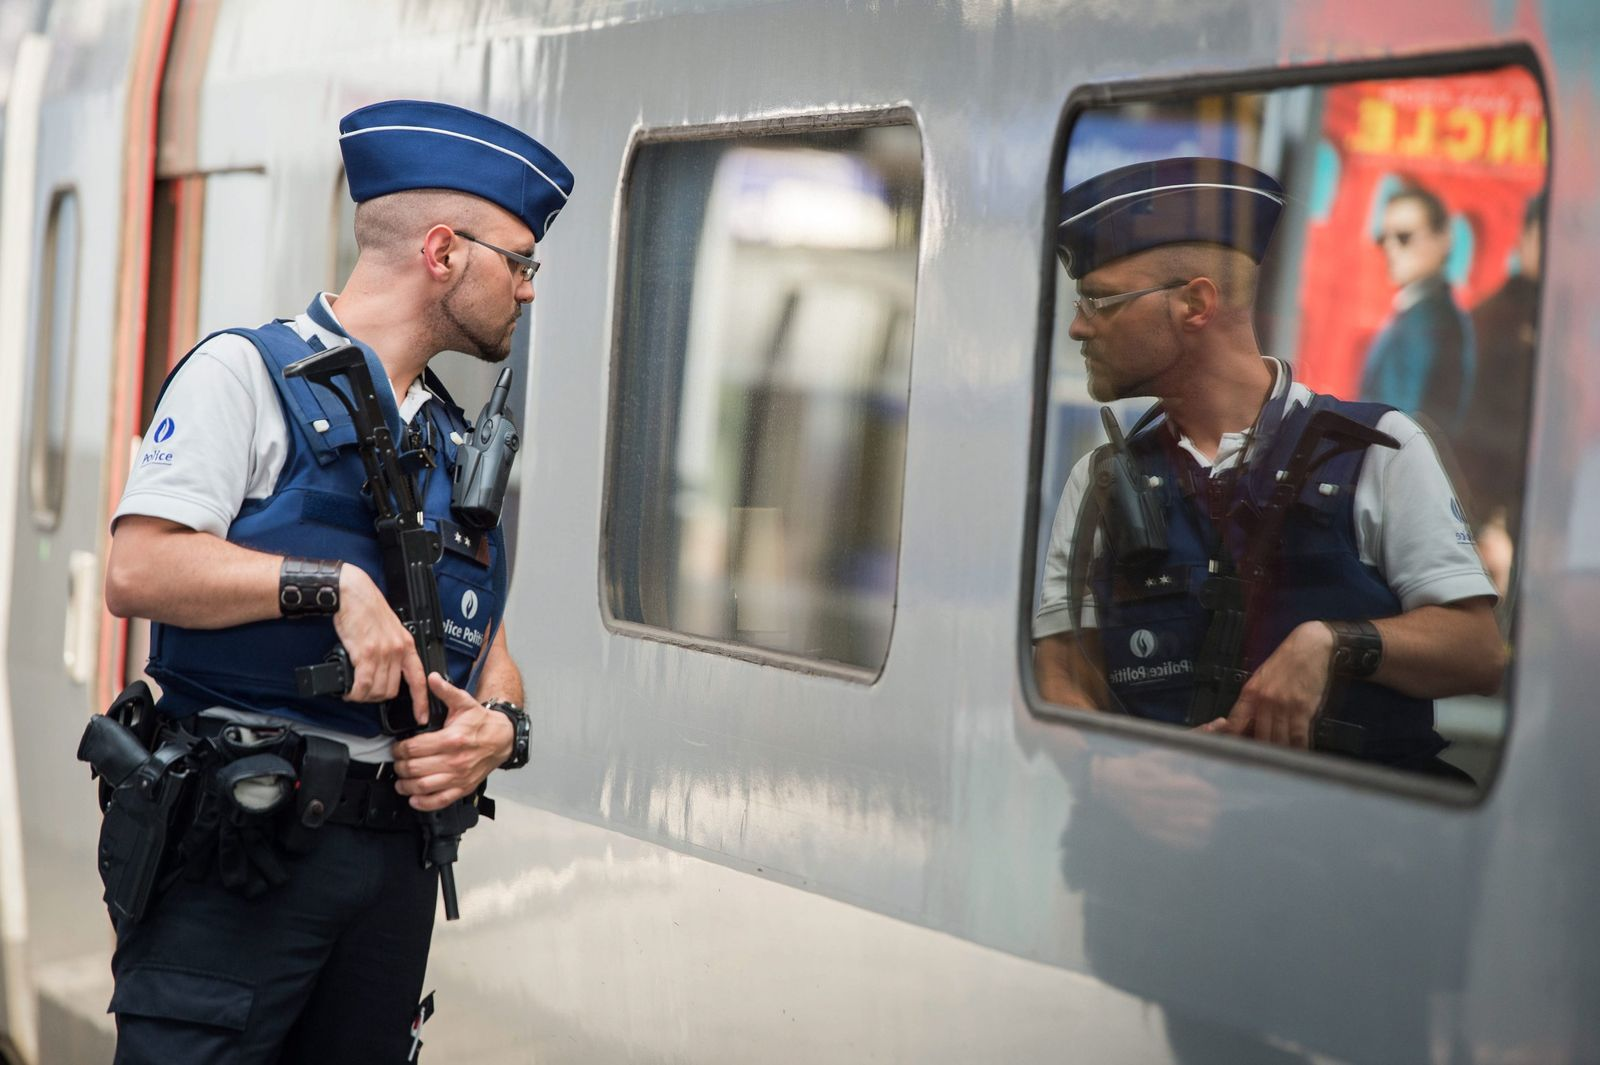 Reinforced security level for the Thalys in Brussels Midi Station